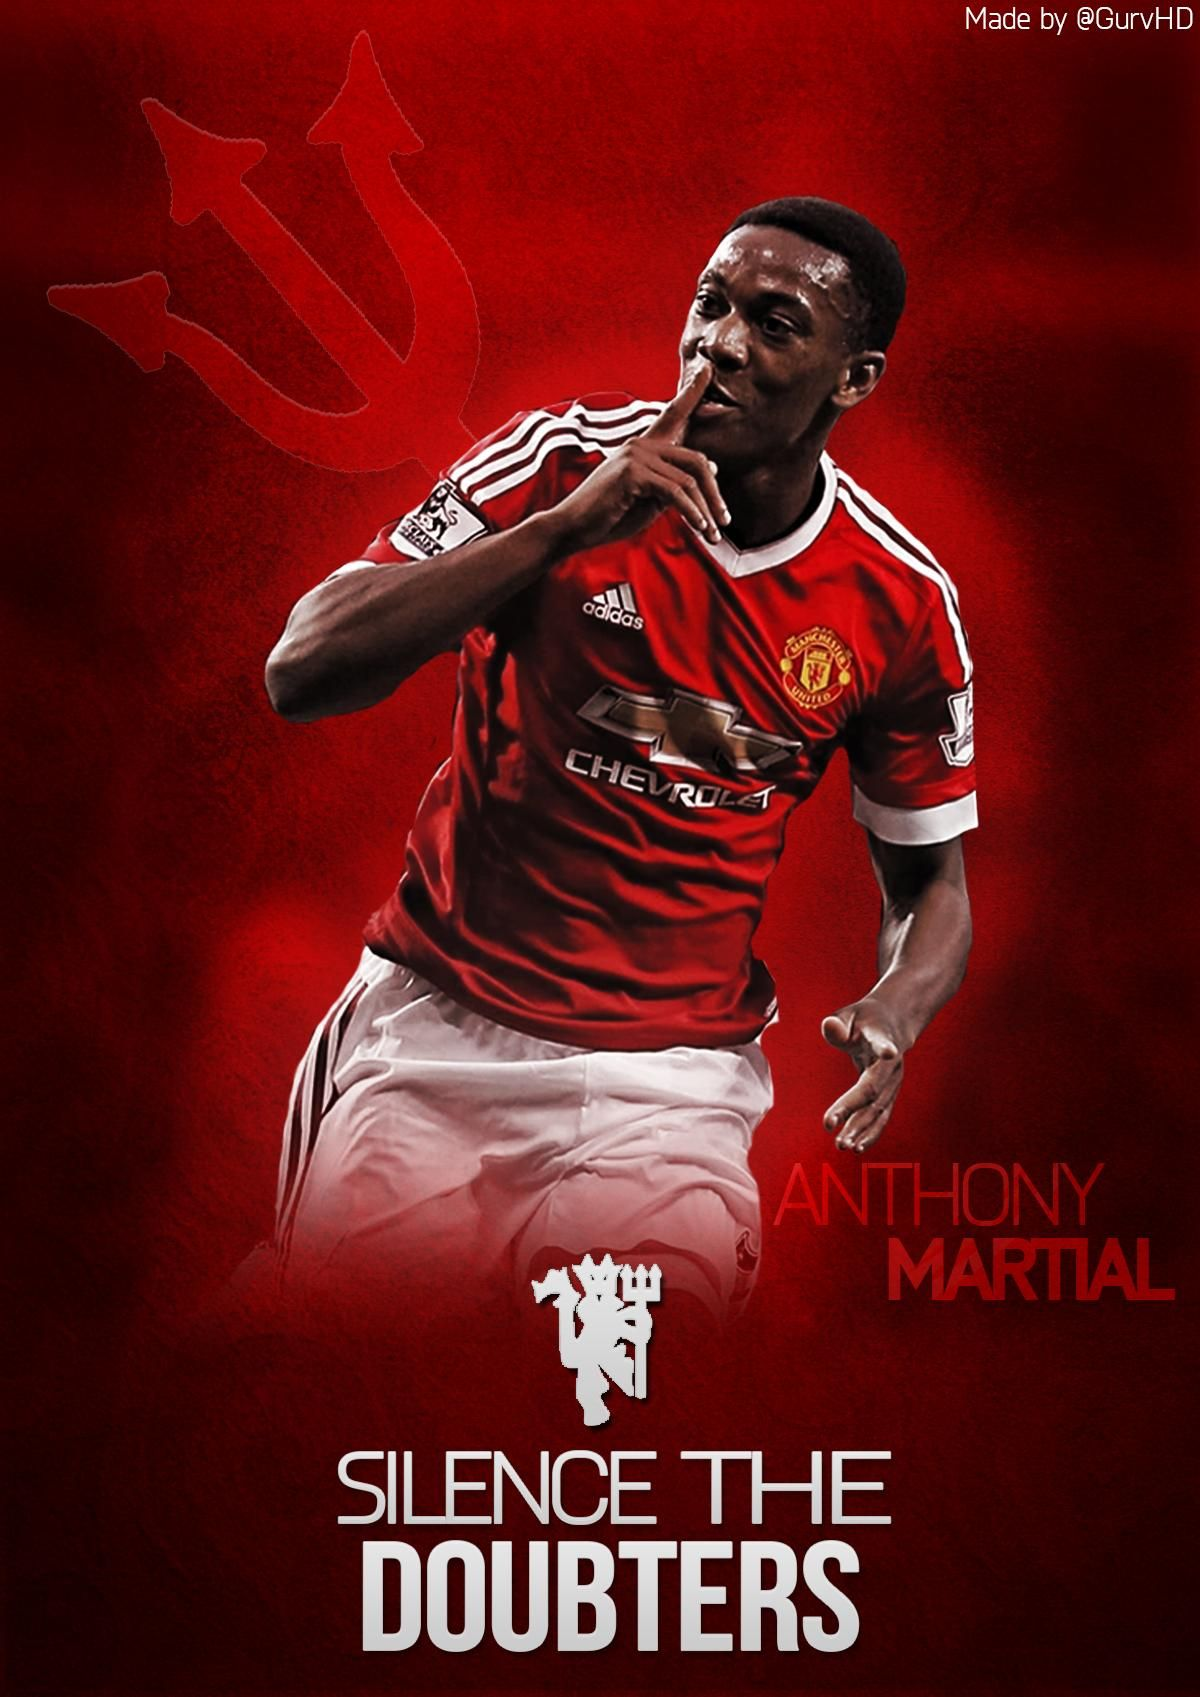 Anthony Martial Wallpaper 2020 Live Wallpaper Hd Anthony Martial Manchester United Team Manchester United Logo